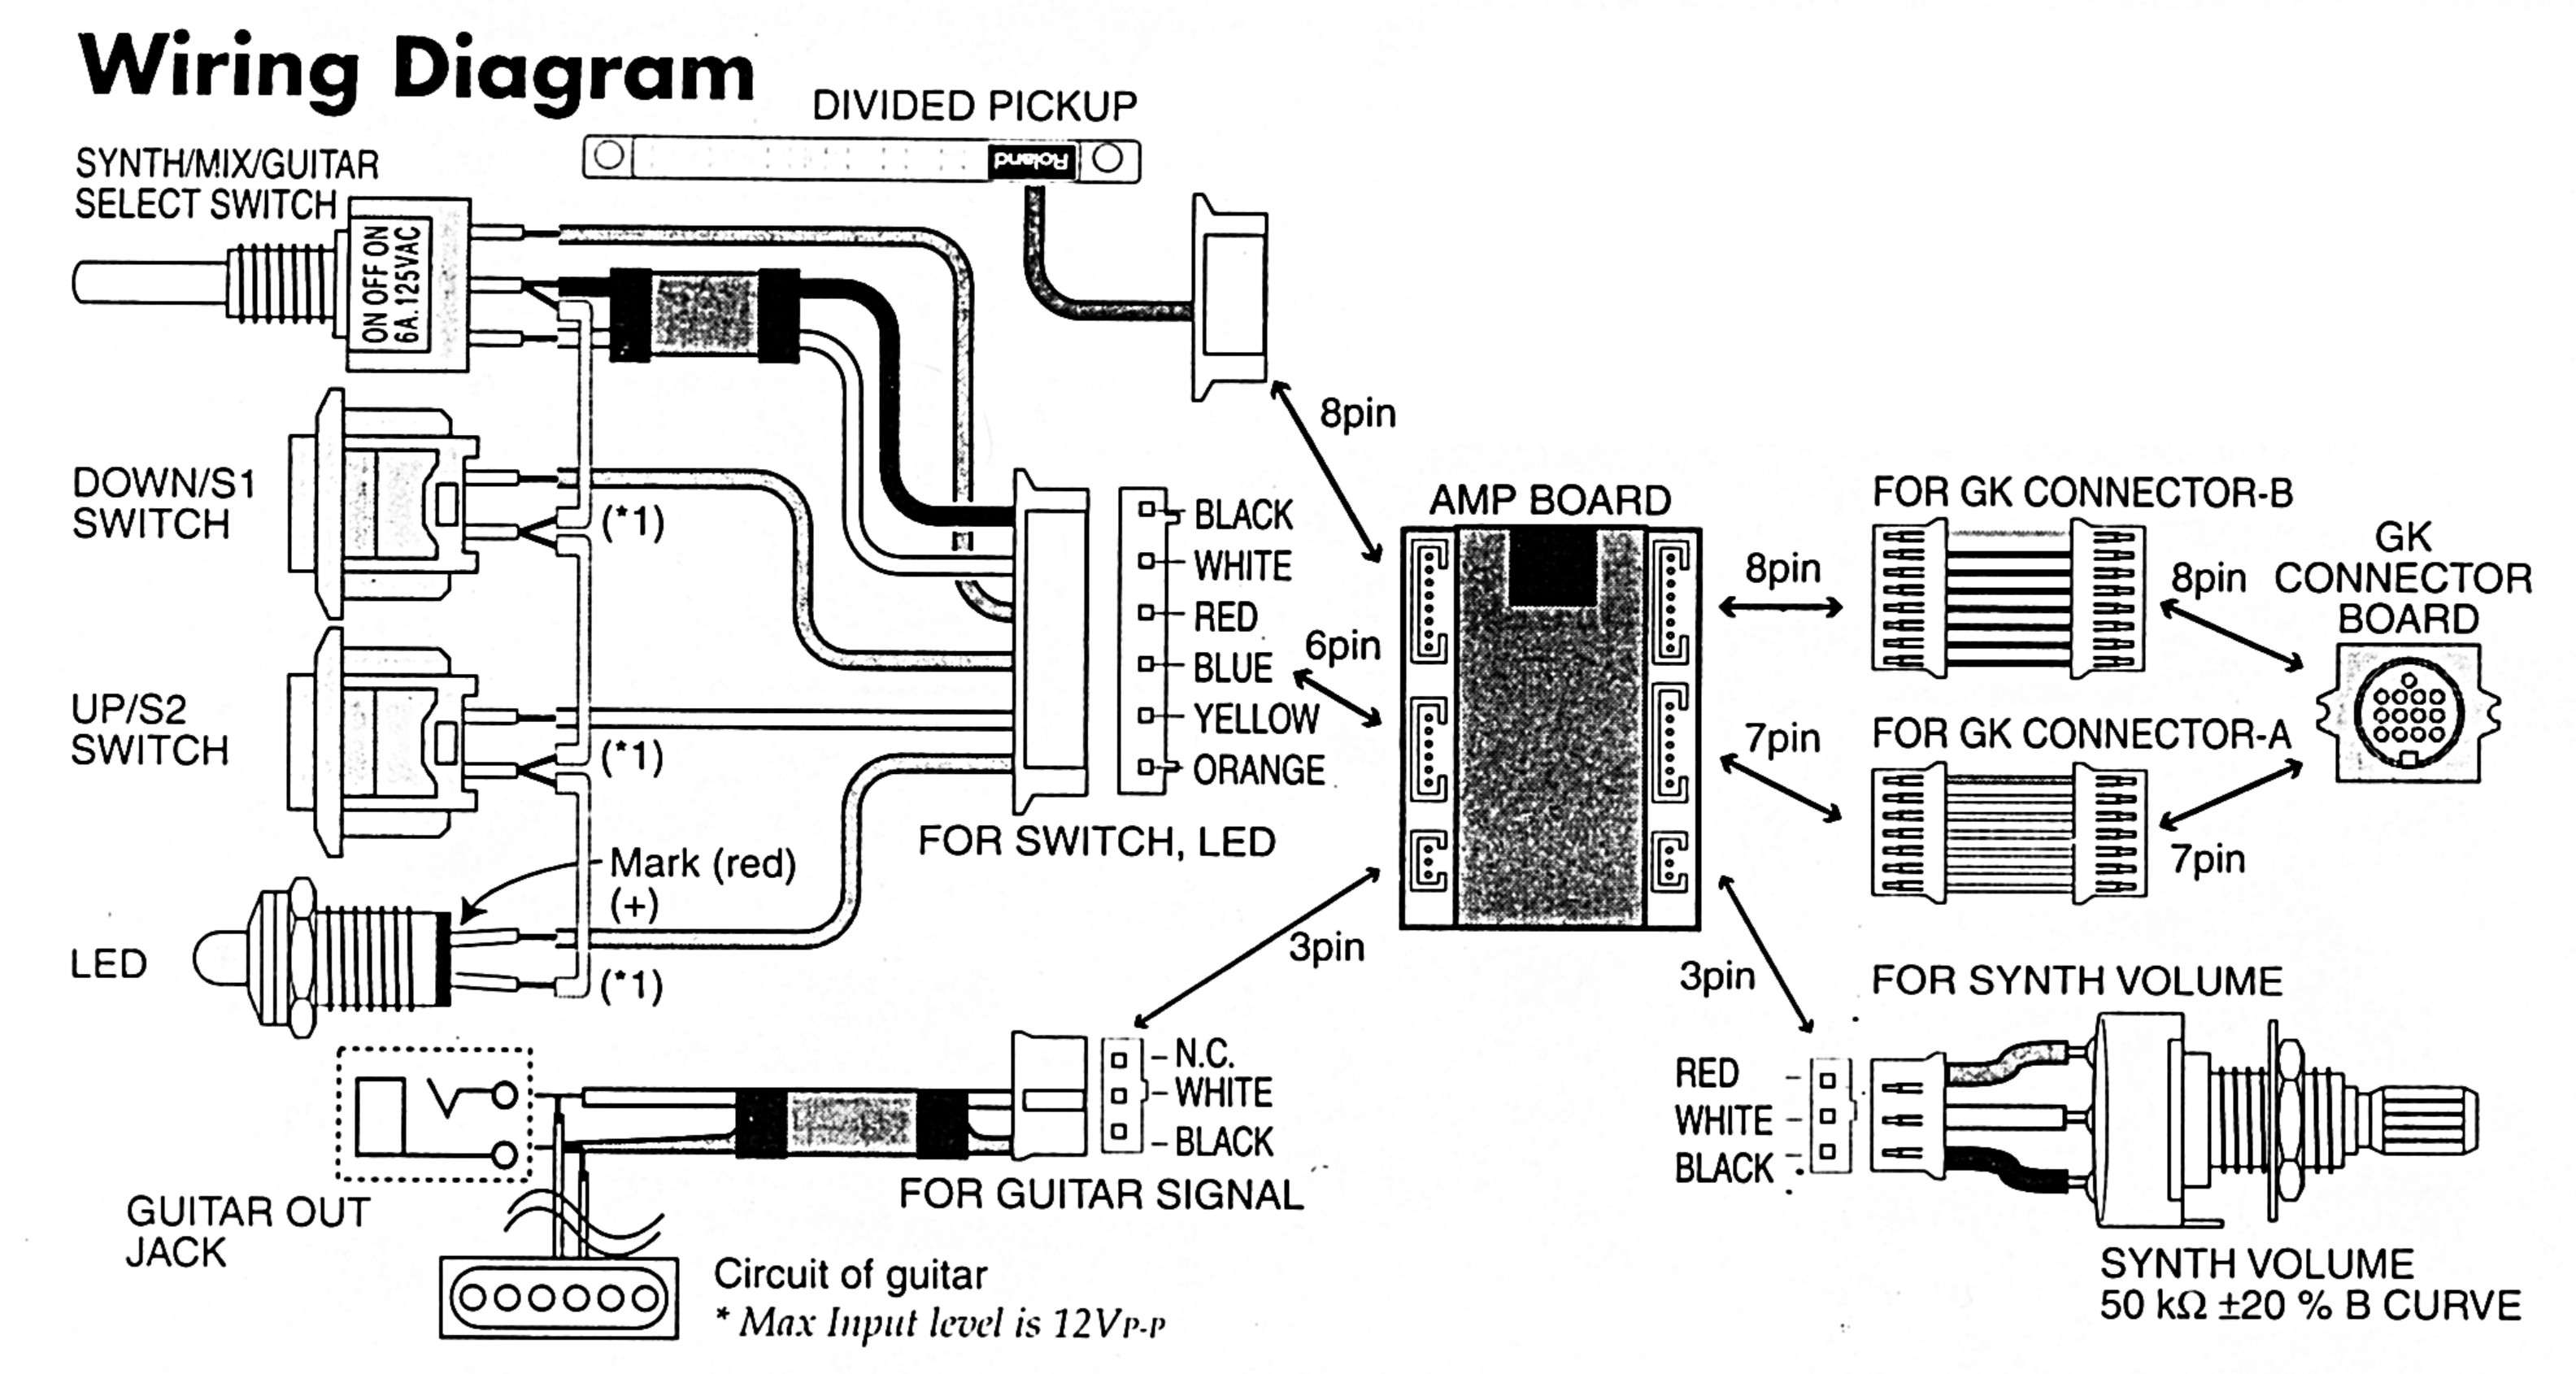 roland gk kit gt th n uk wiring diagram